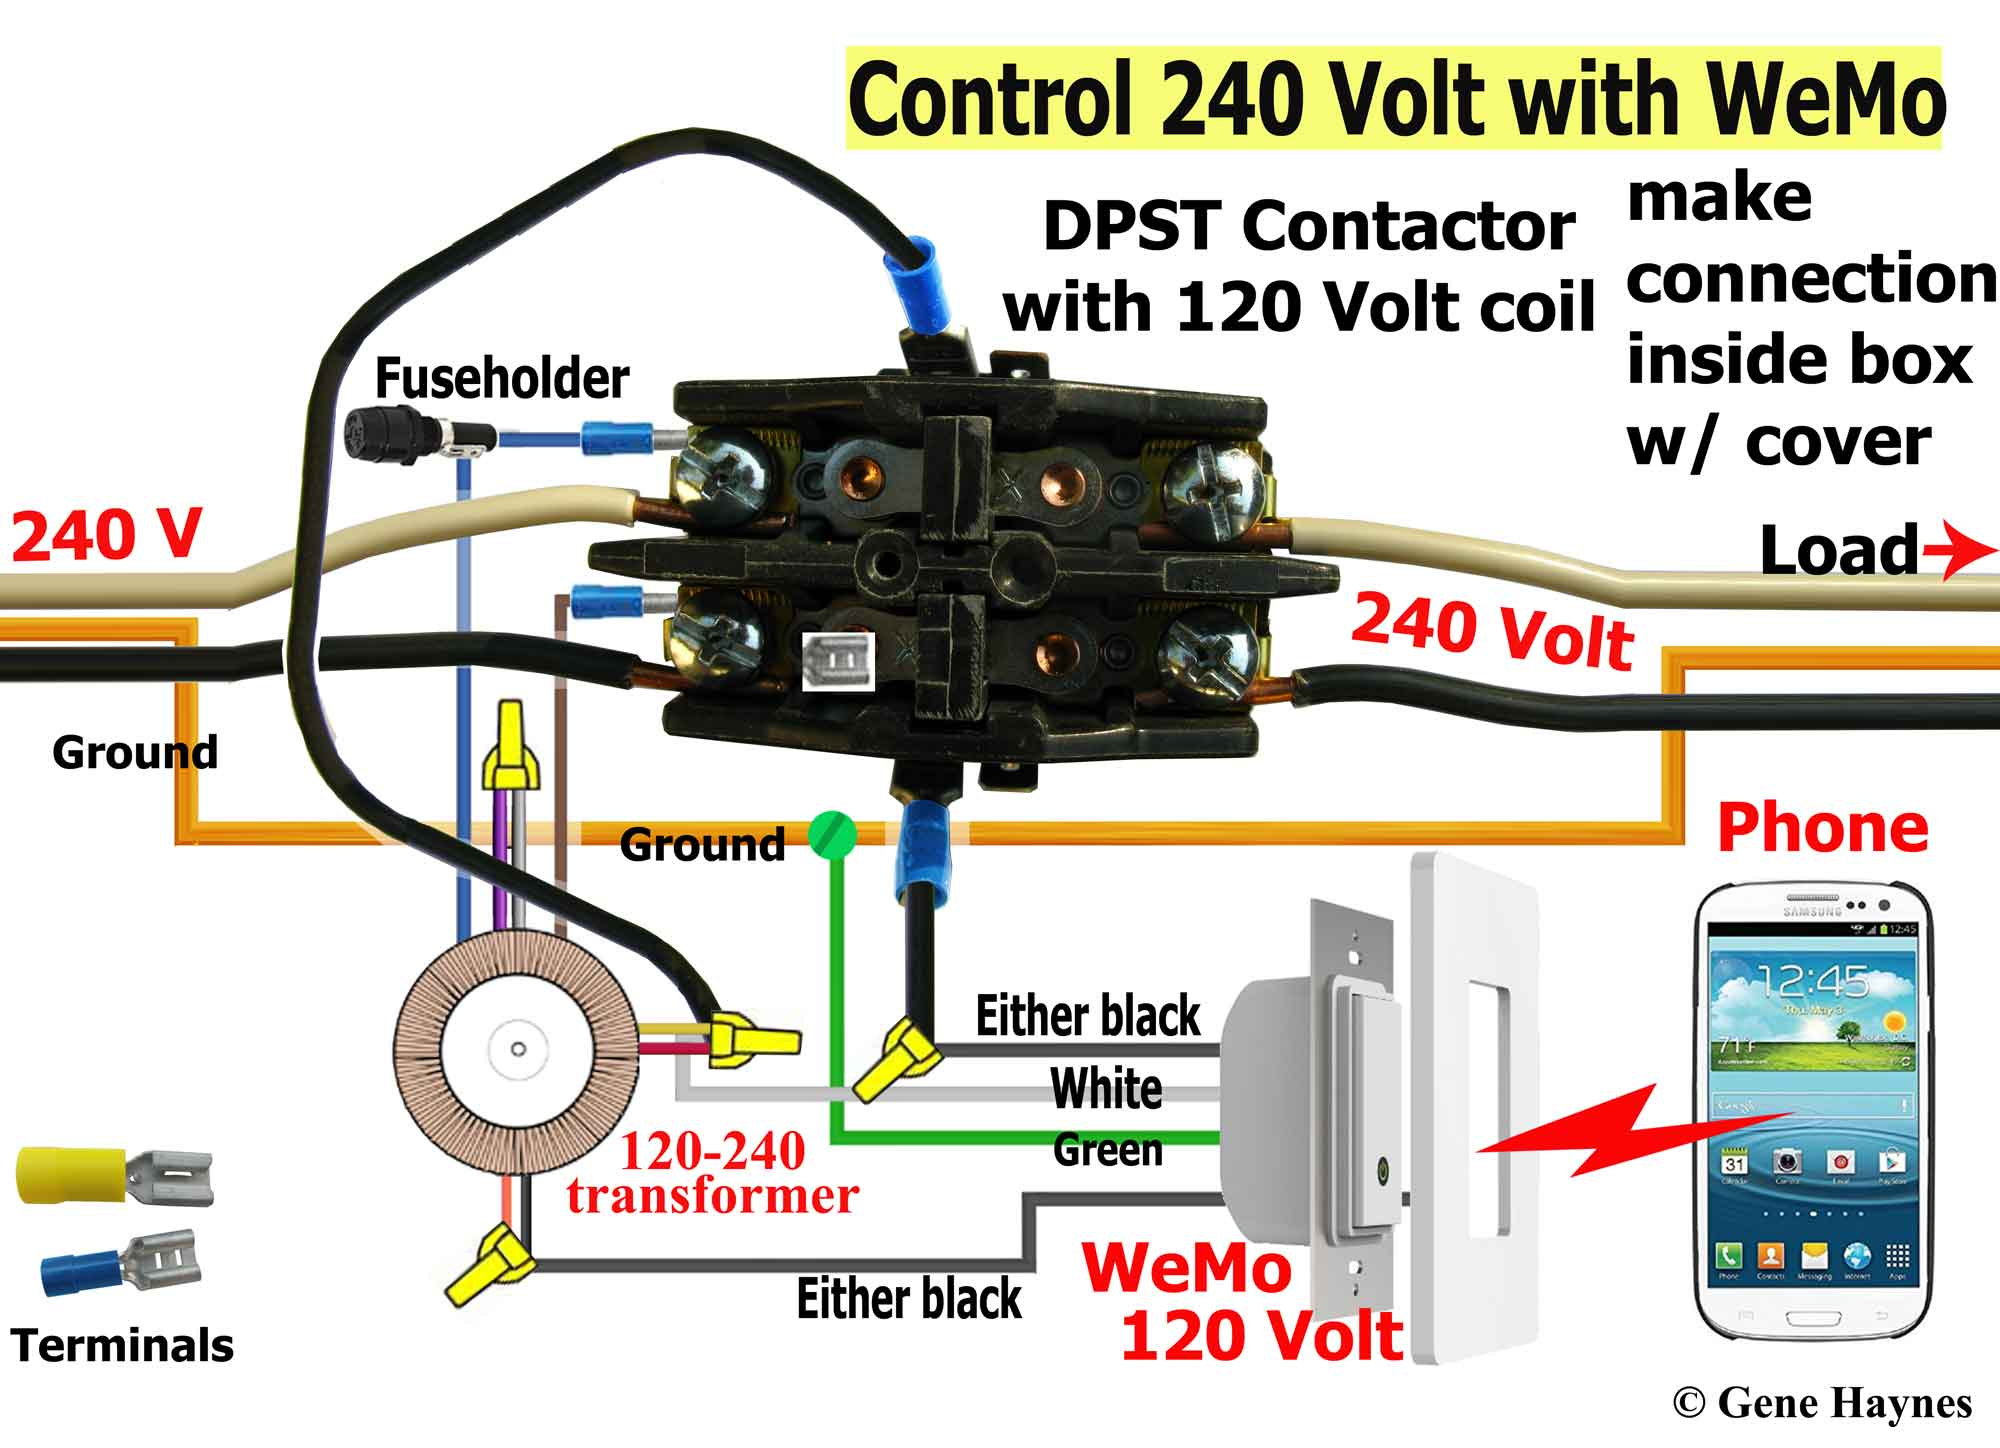 IMG_2203 contactor WeMo r2 control 240 volt with wemo 240 volt contactor wiring diagram at eliteediting.co